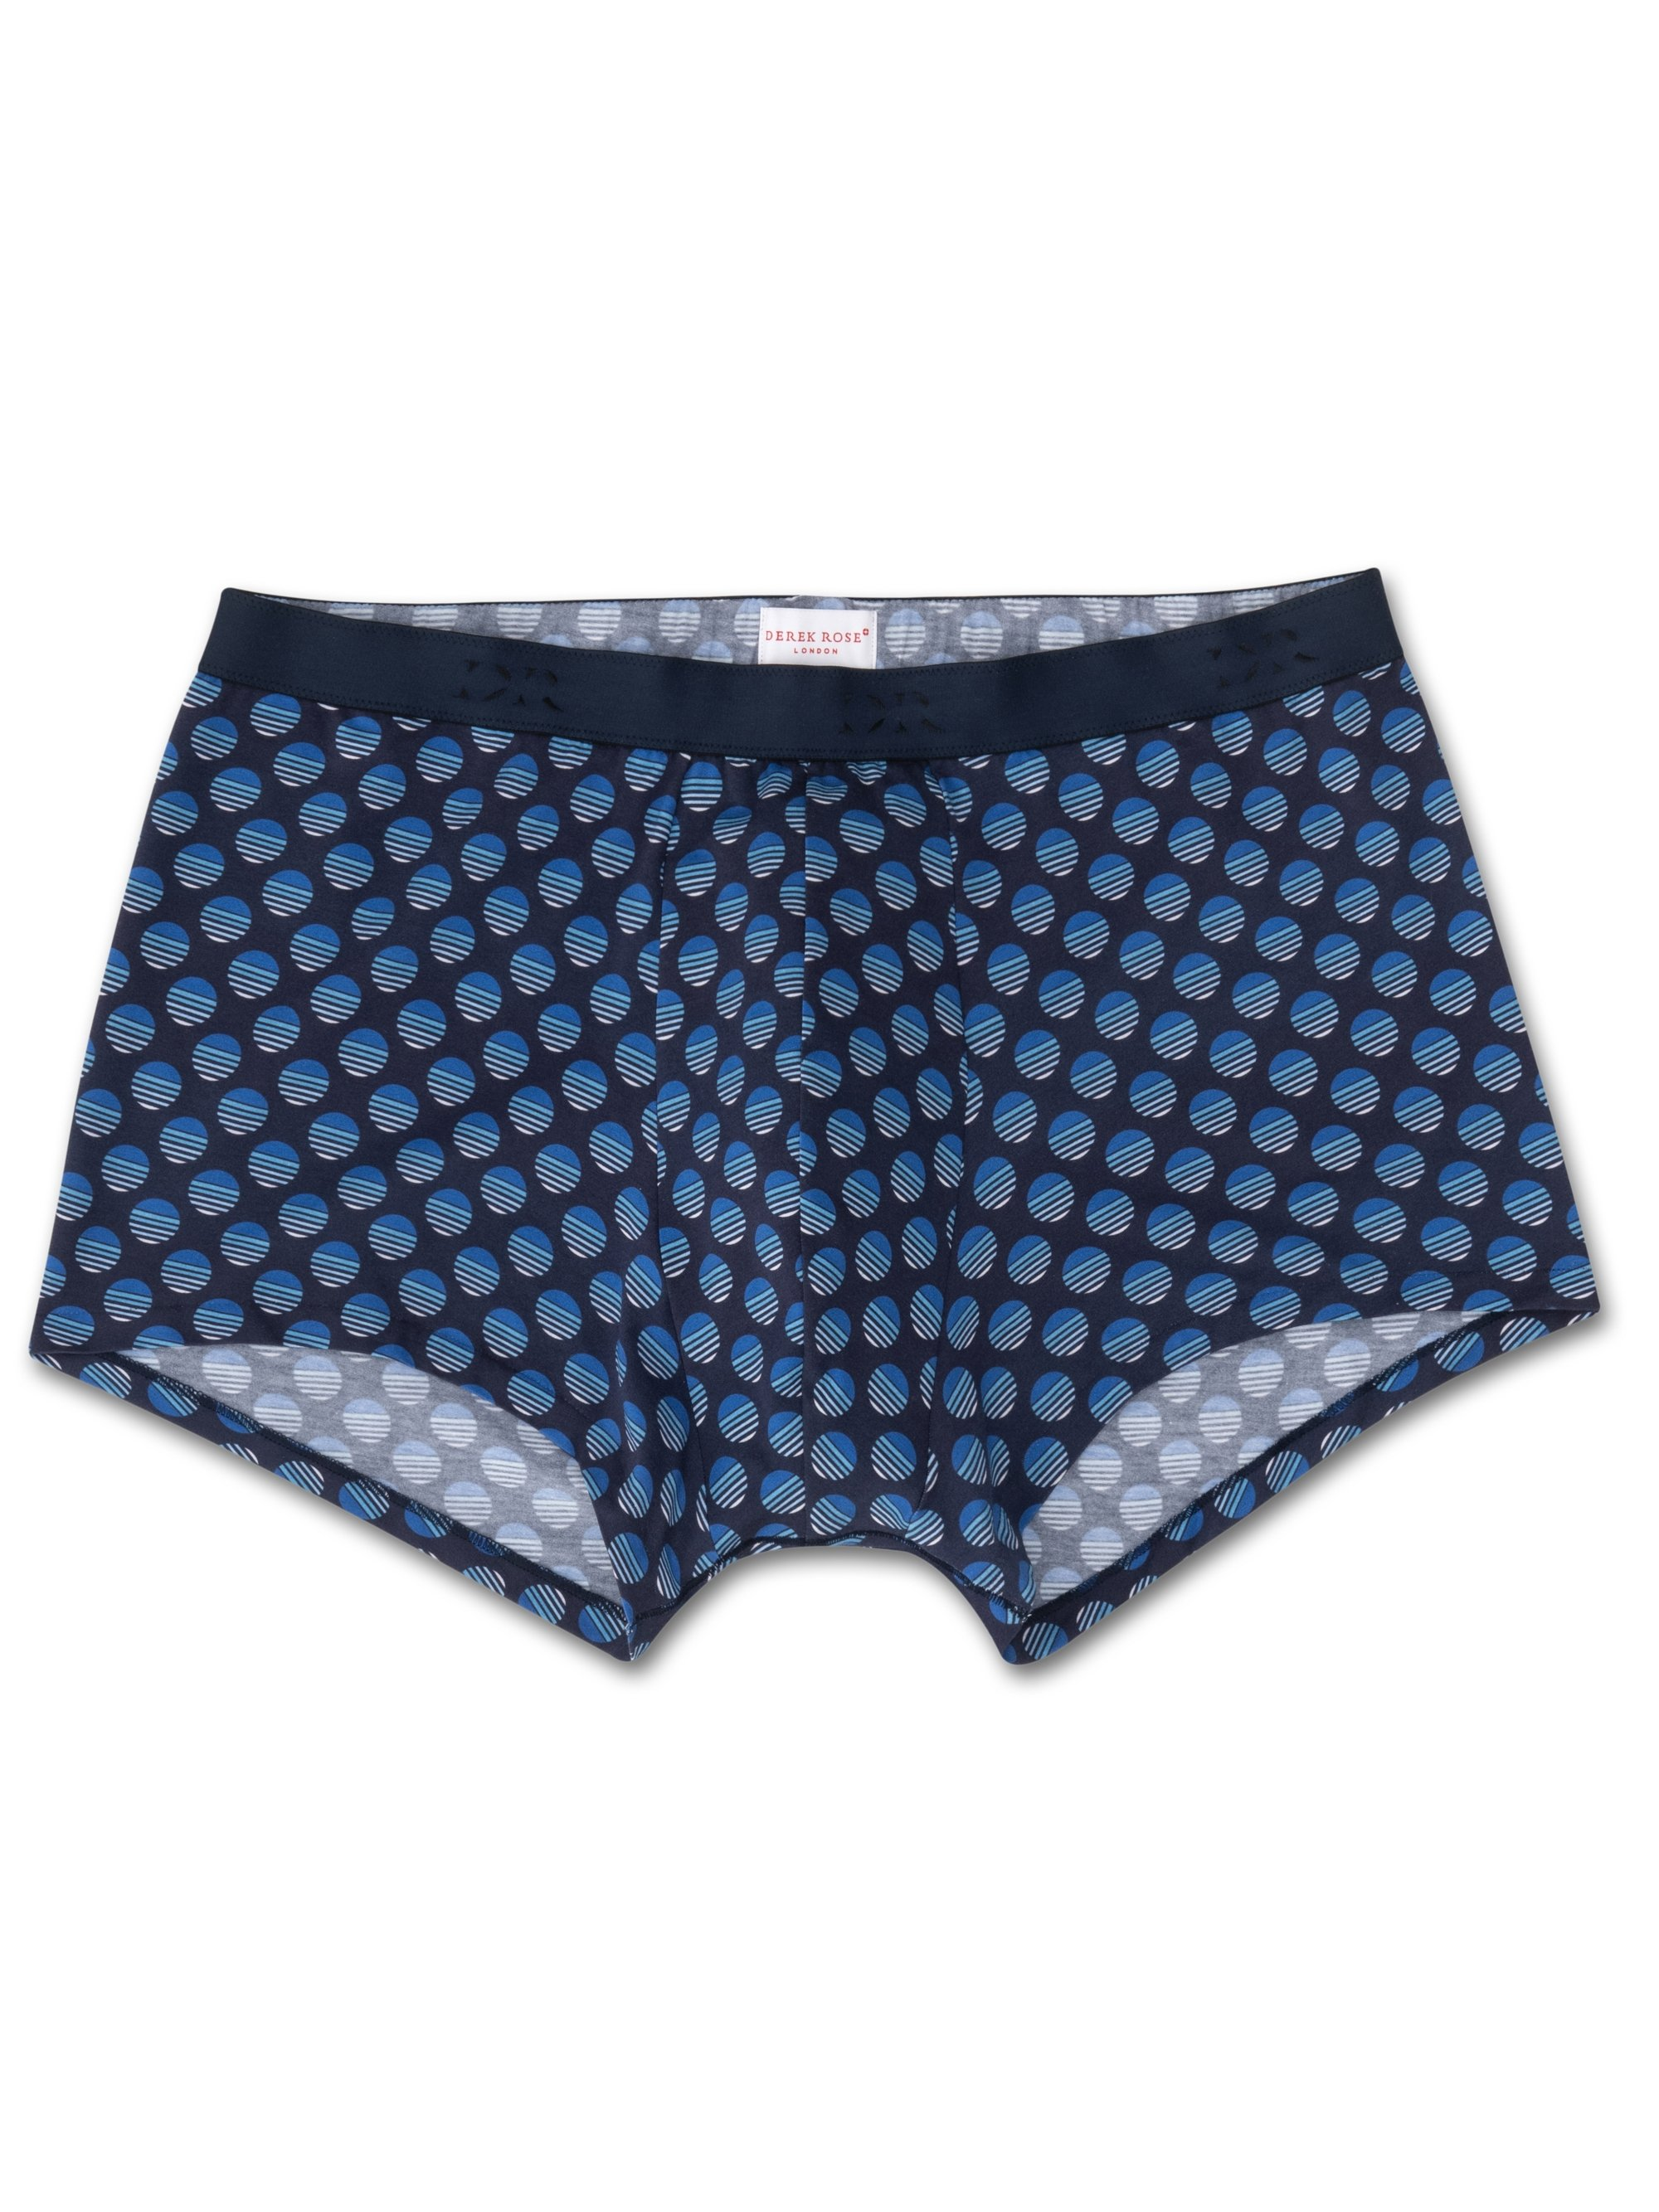 Men's Hipster Spot 4 Pima Cotton Stretch Navy